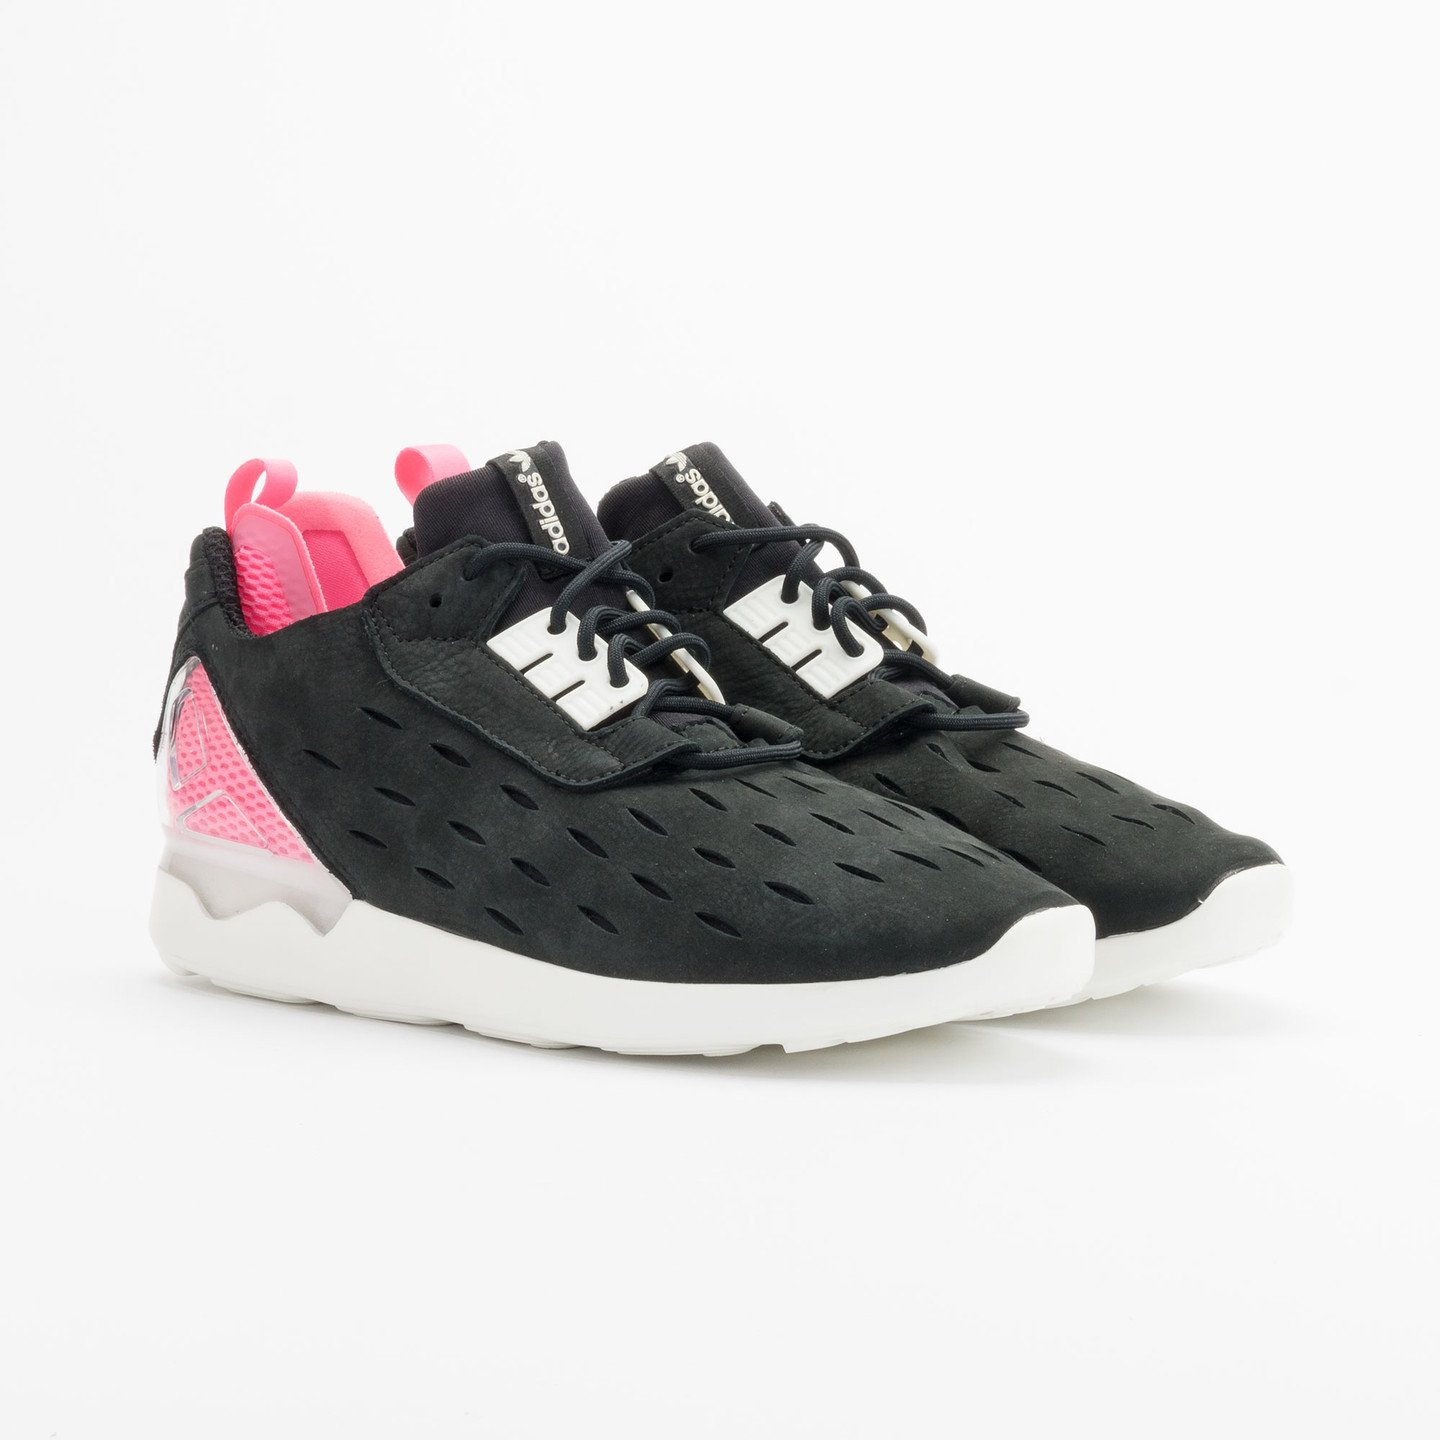 Adidas ZX 8000 Blue Boost Black/Hot-Pink/White B25872-44.66